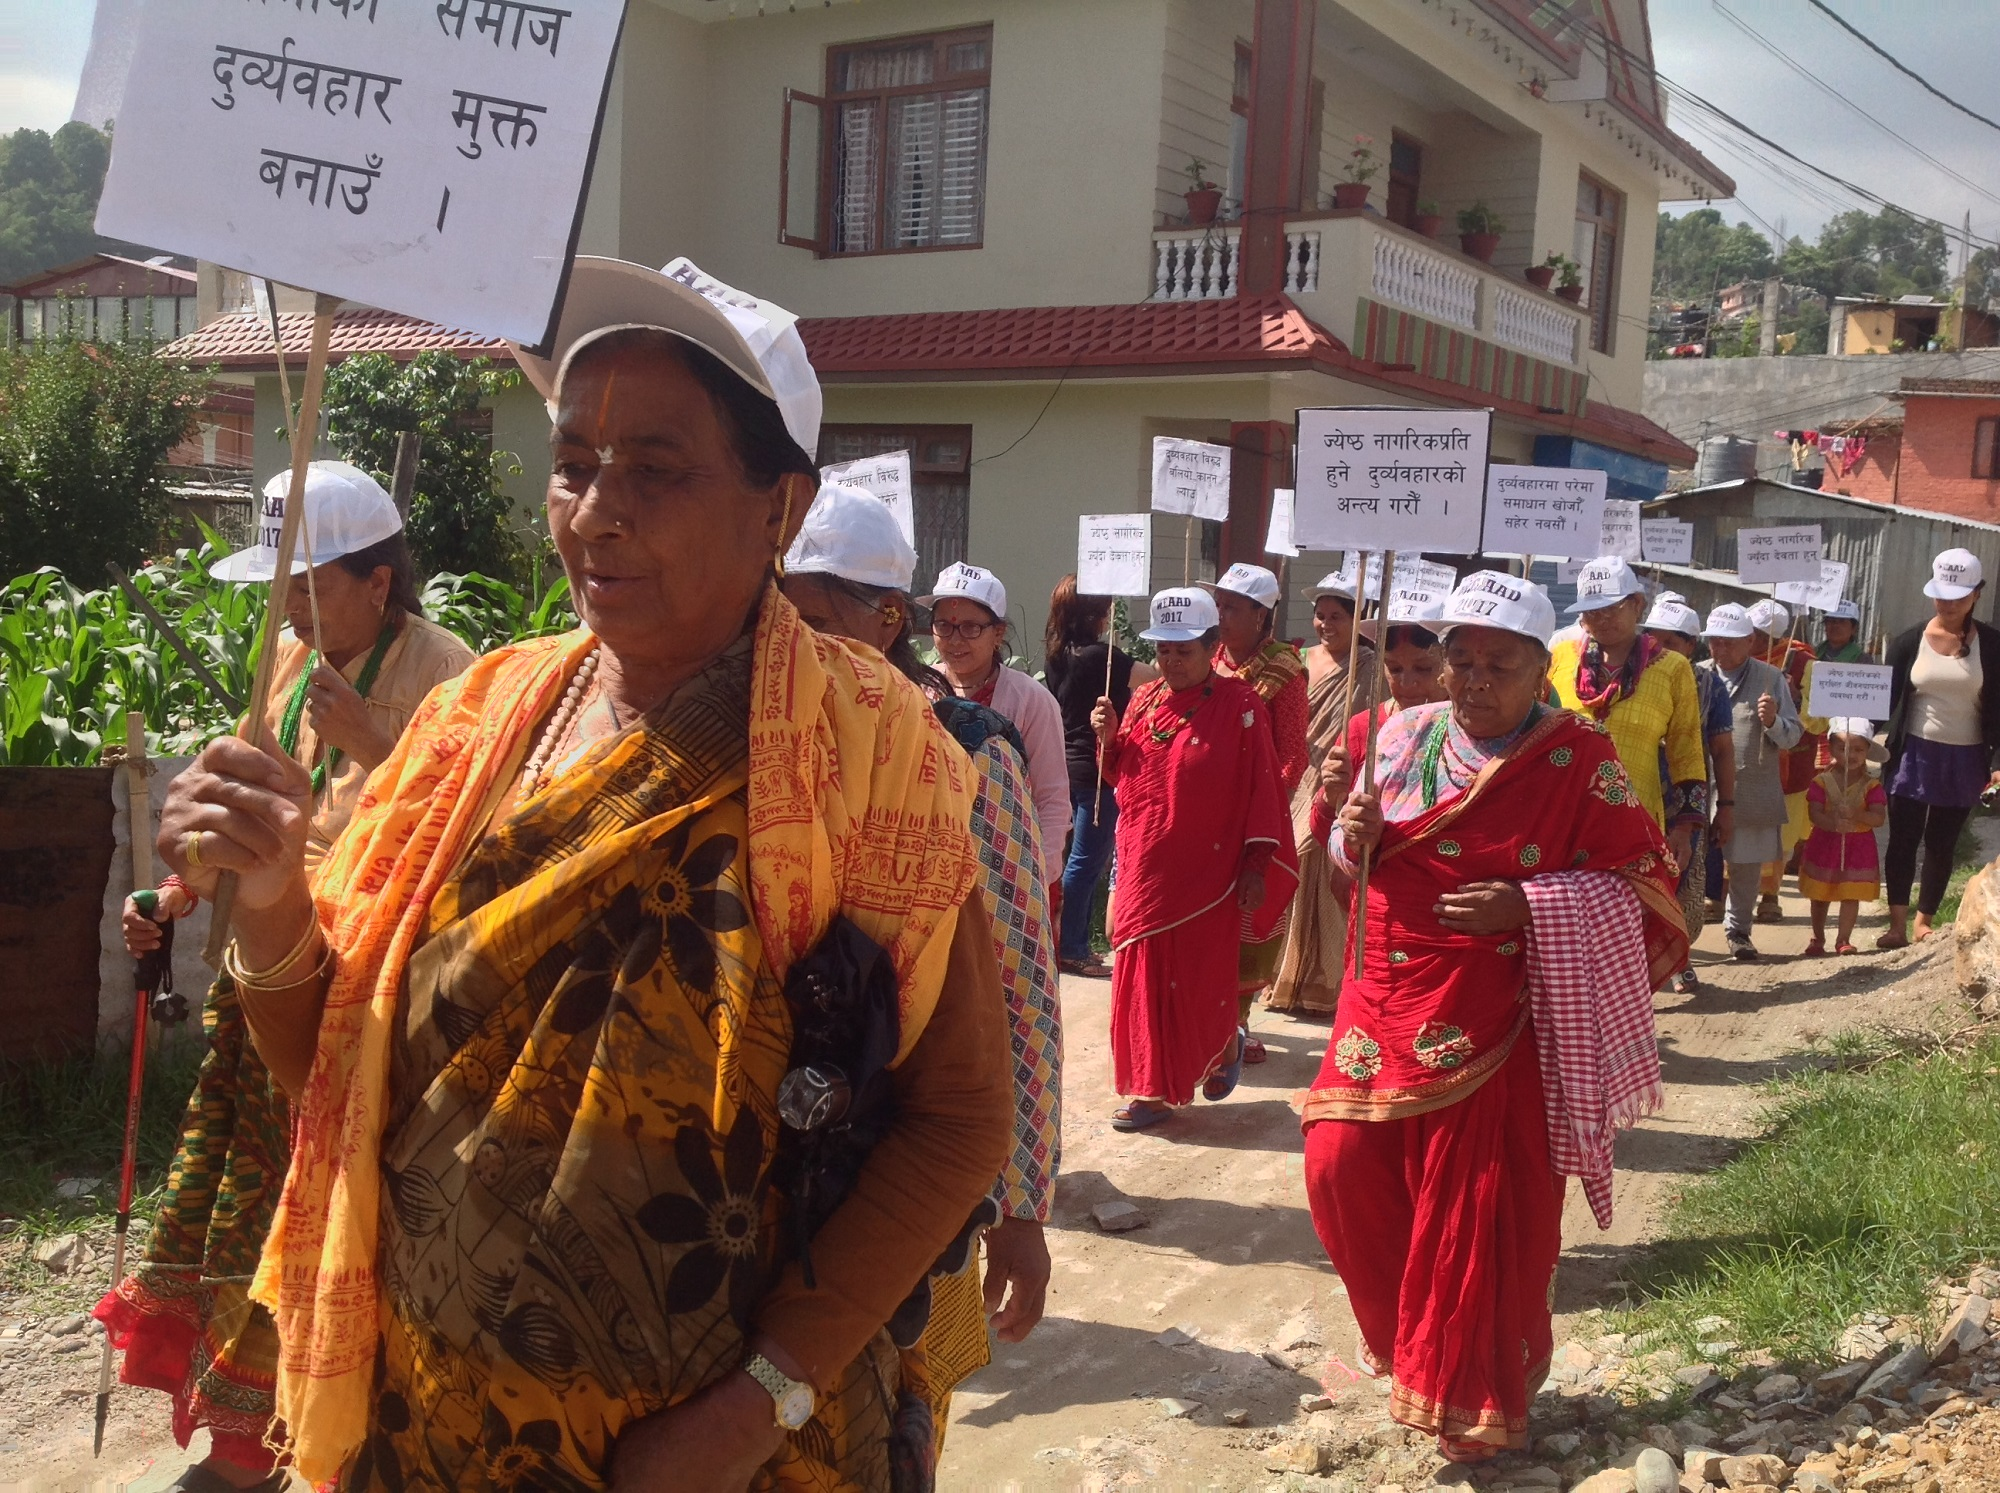 Older people march on a rally in Nepal on World Elder Abuse Awareness Day 2017